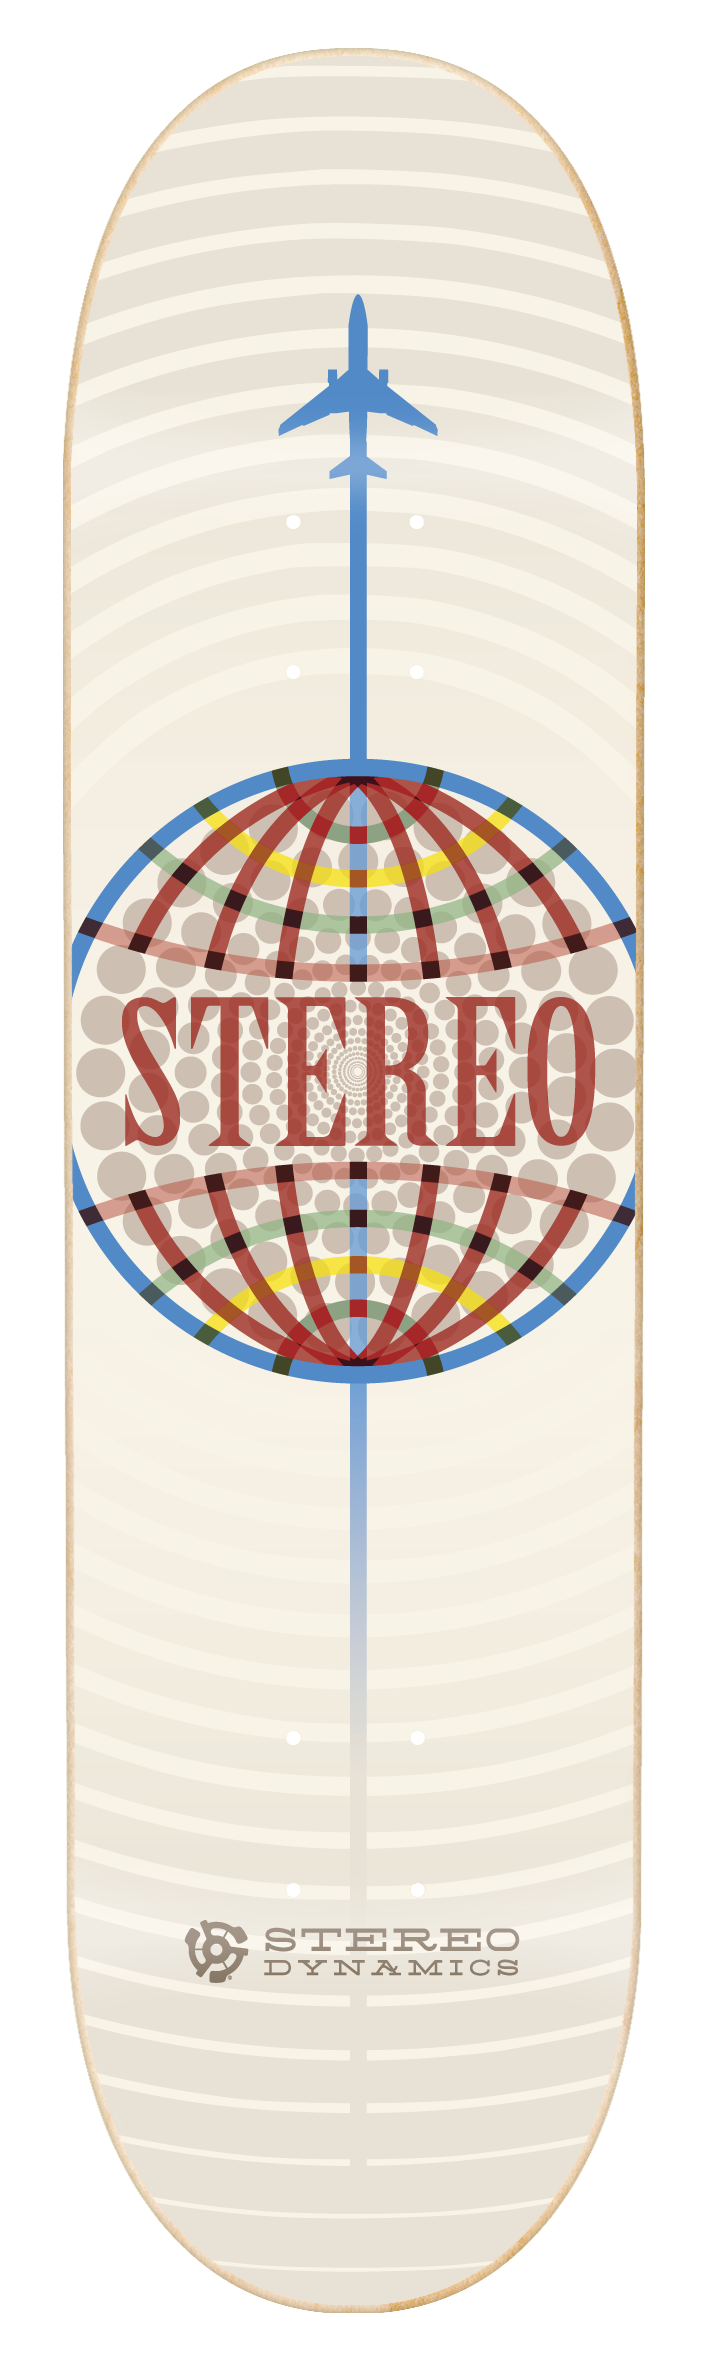 stereo-dynamics-team-worldwide.png